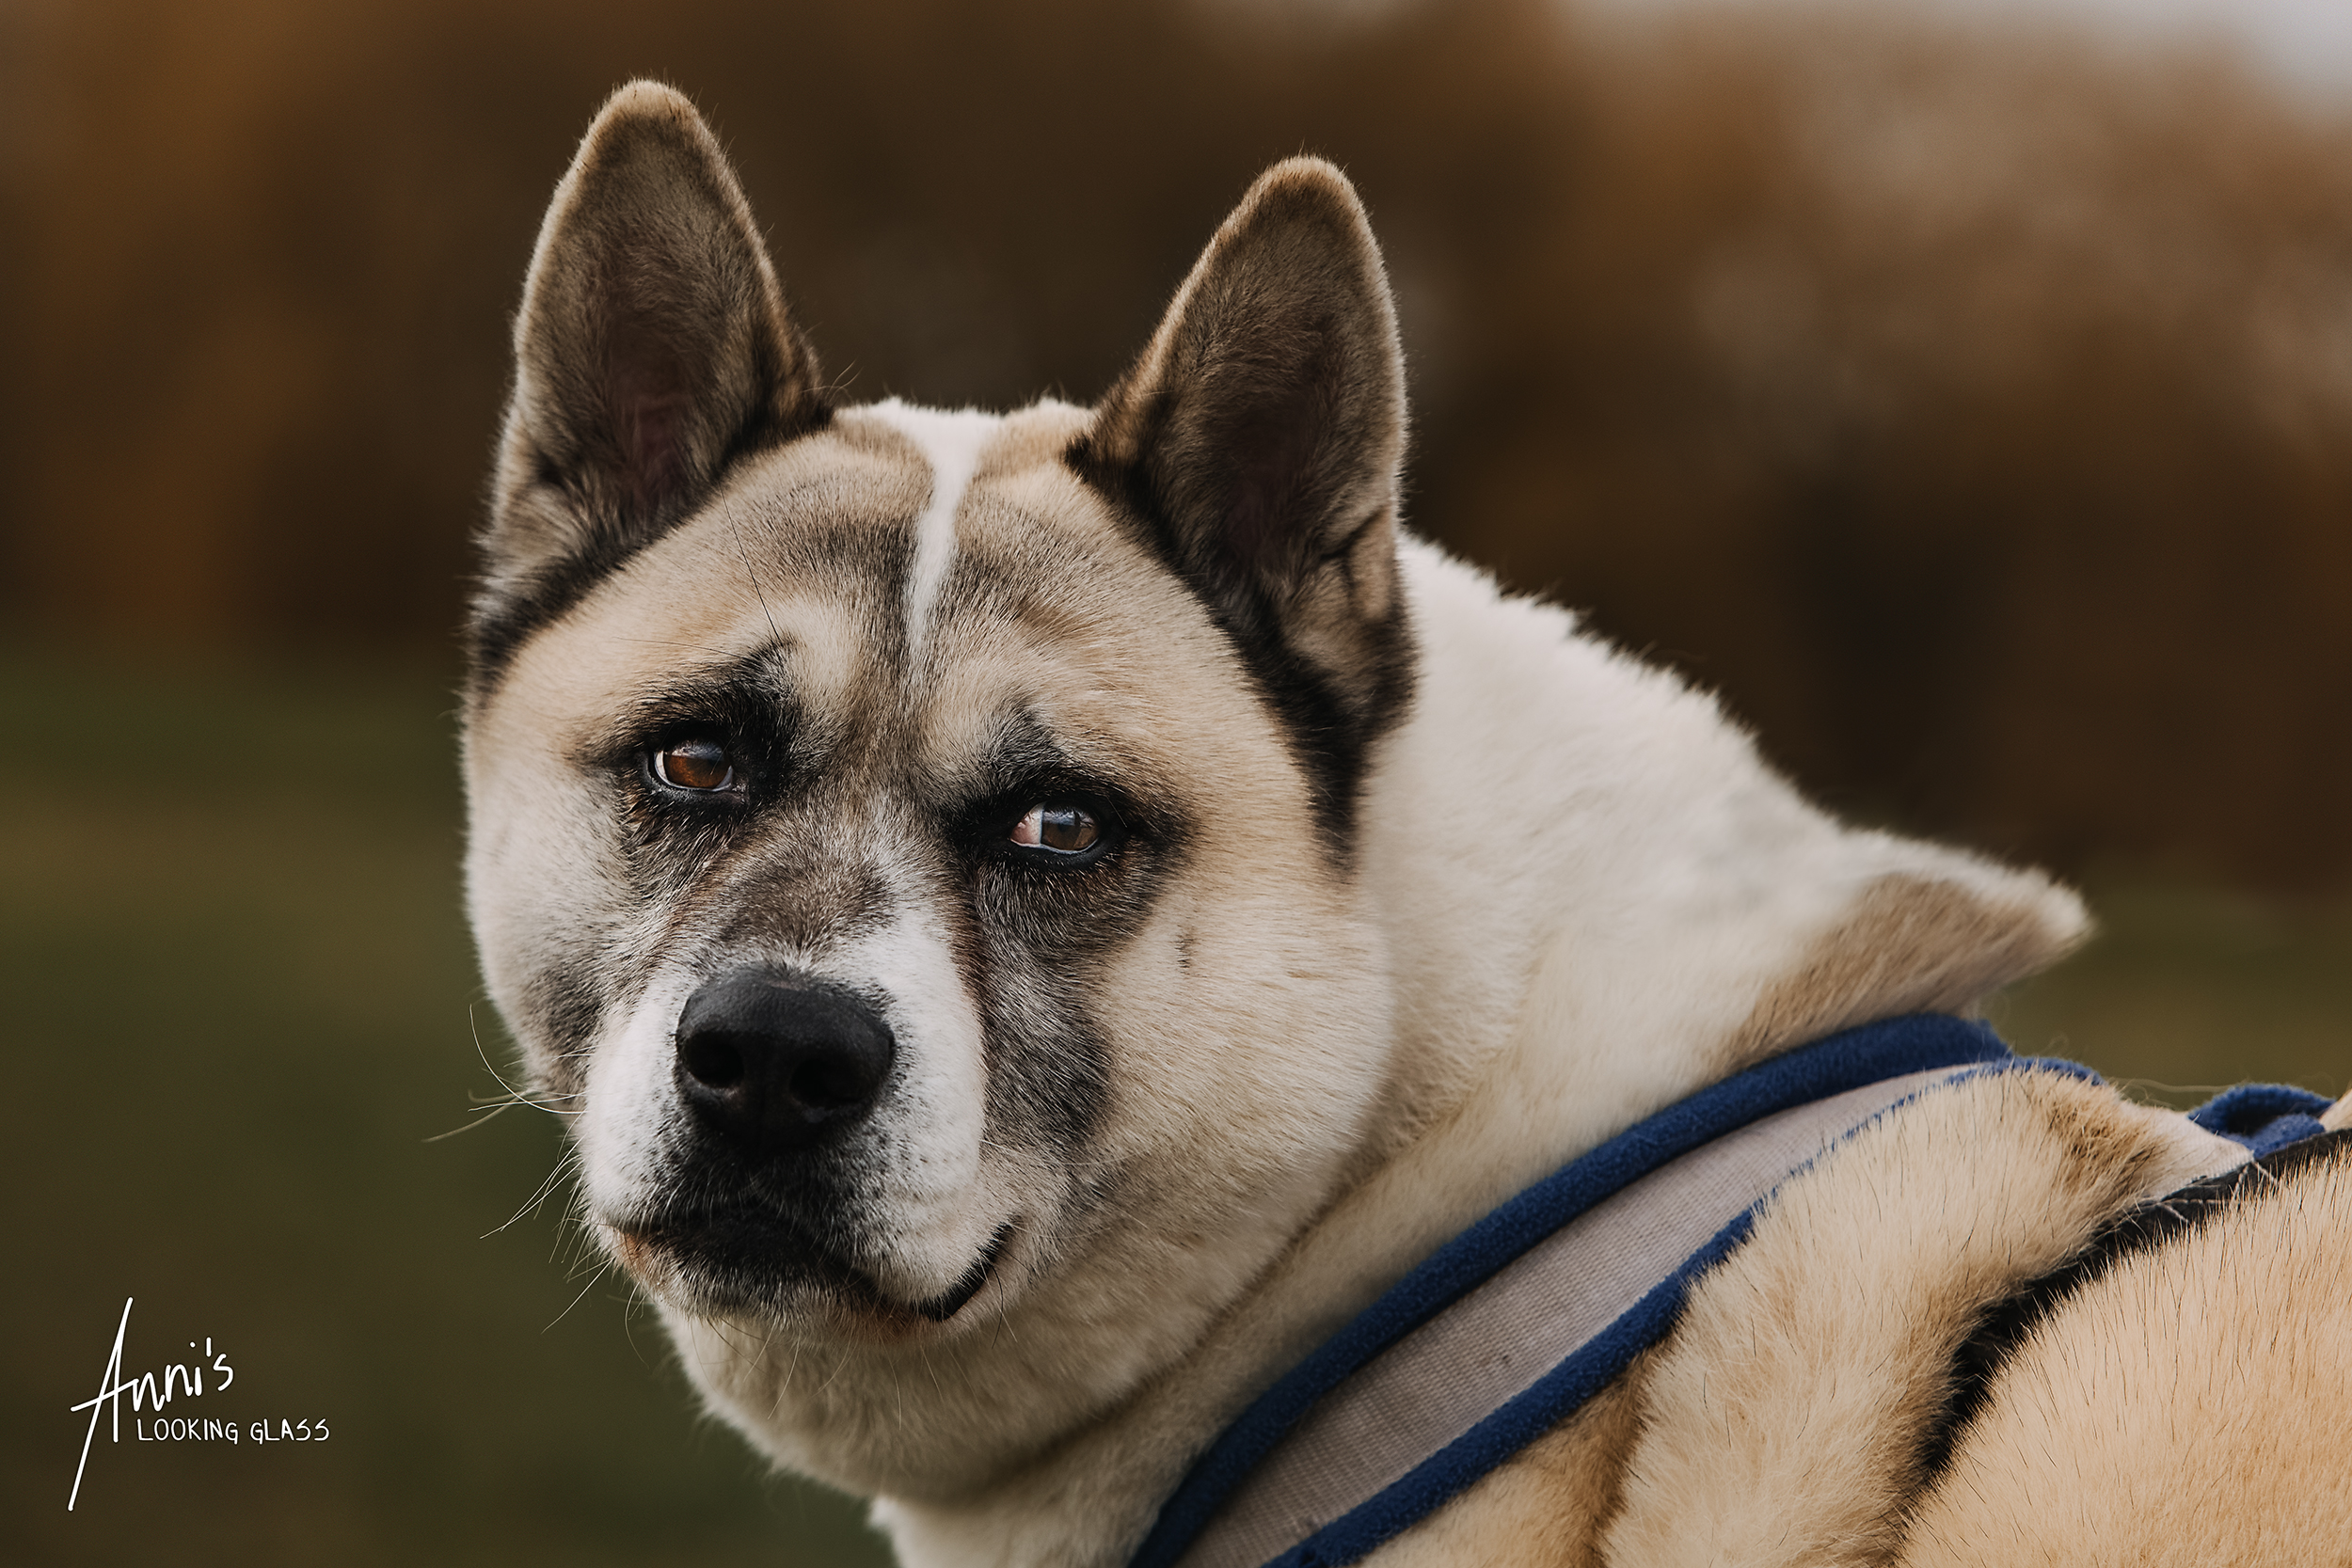 Loughborough dog photographer | A rescue dog from College Garth Kennels near Hathern | 6th March 2018